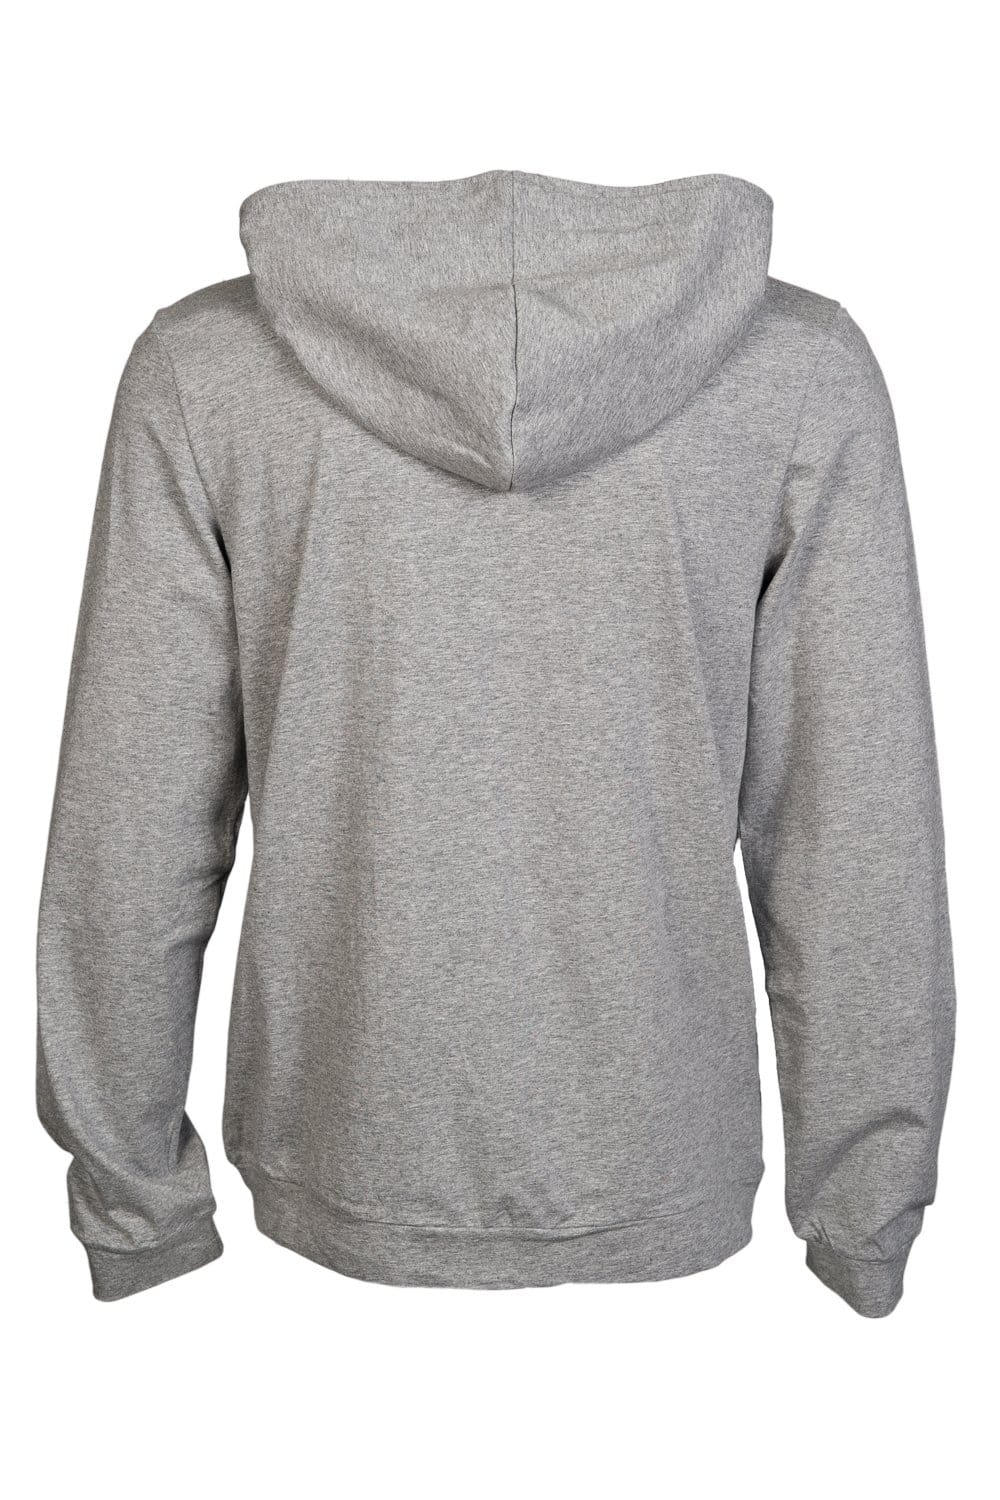 HUGO BOSS Lightweight sweatshirt eC5e2